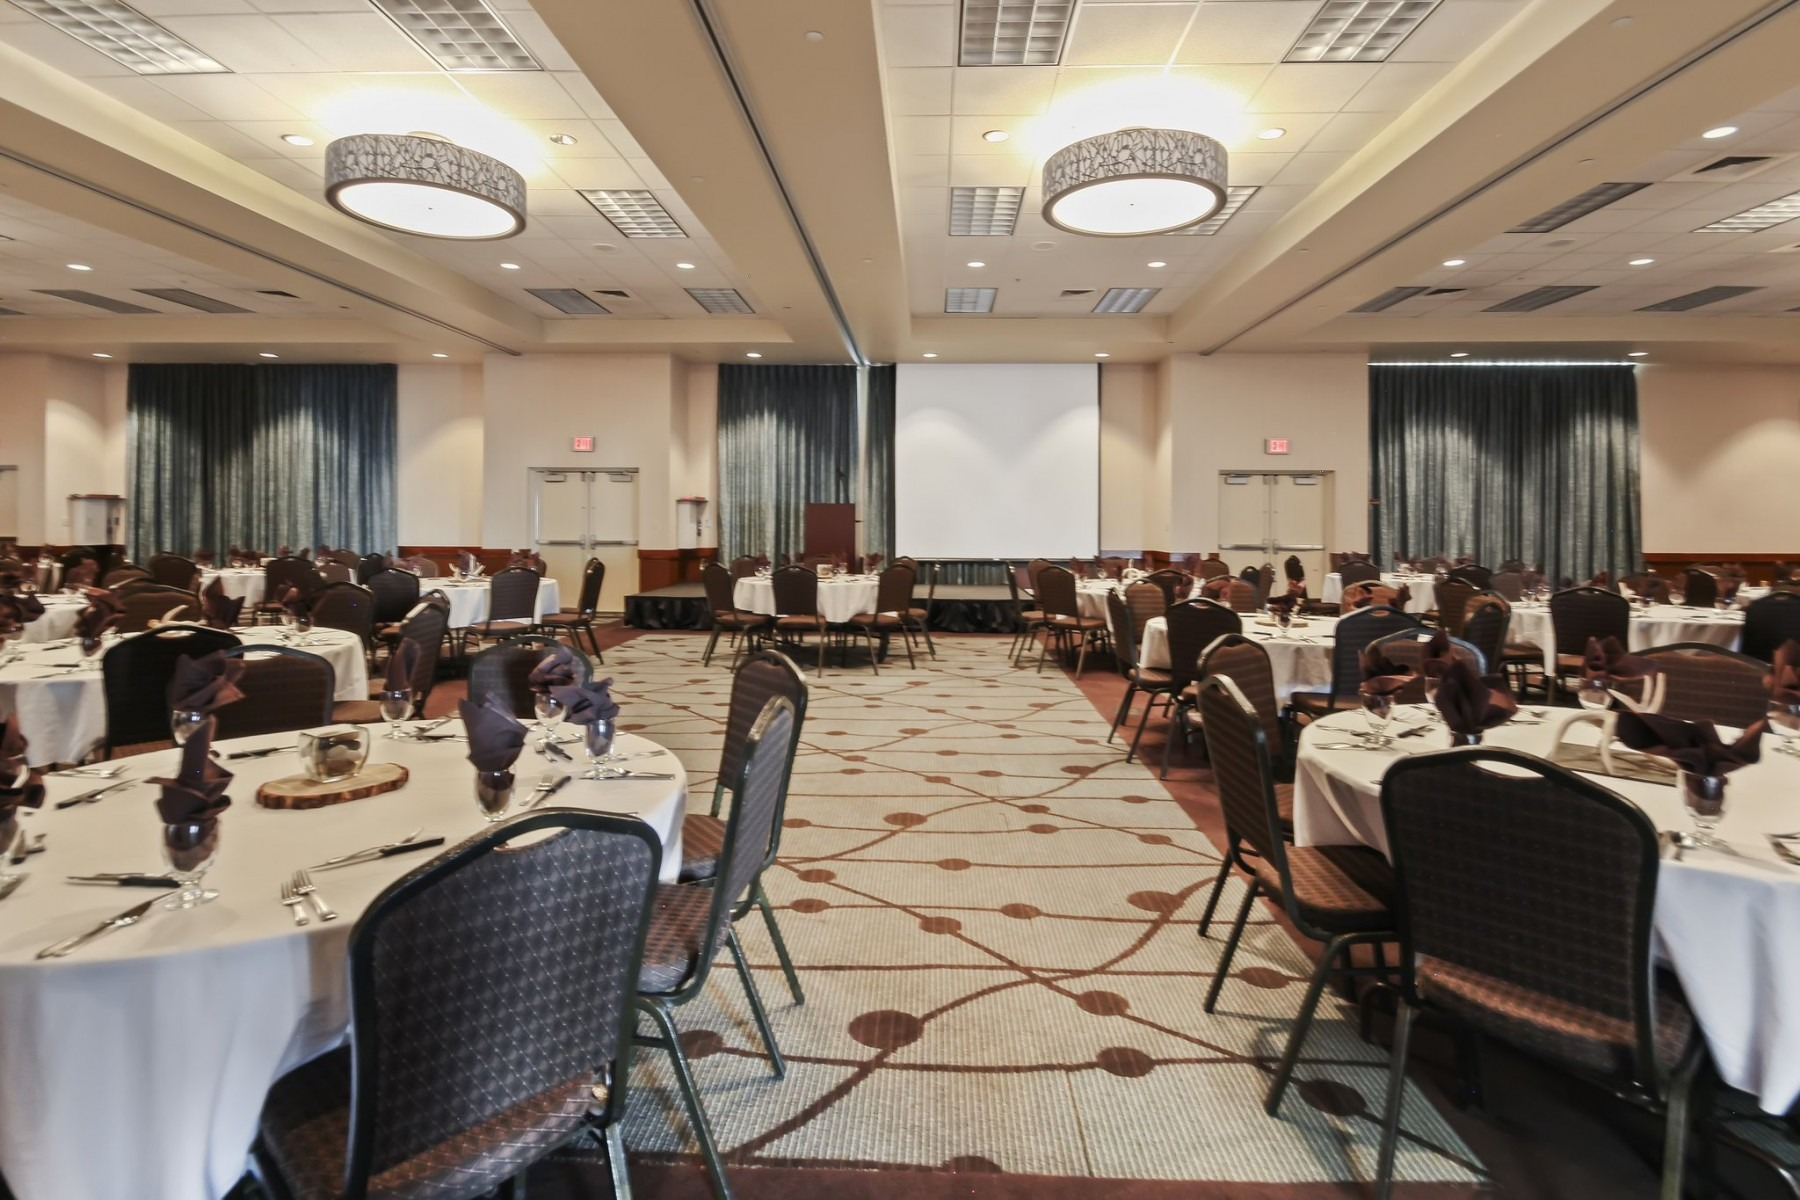 Wedding/Banquet Room